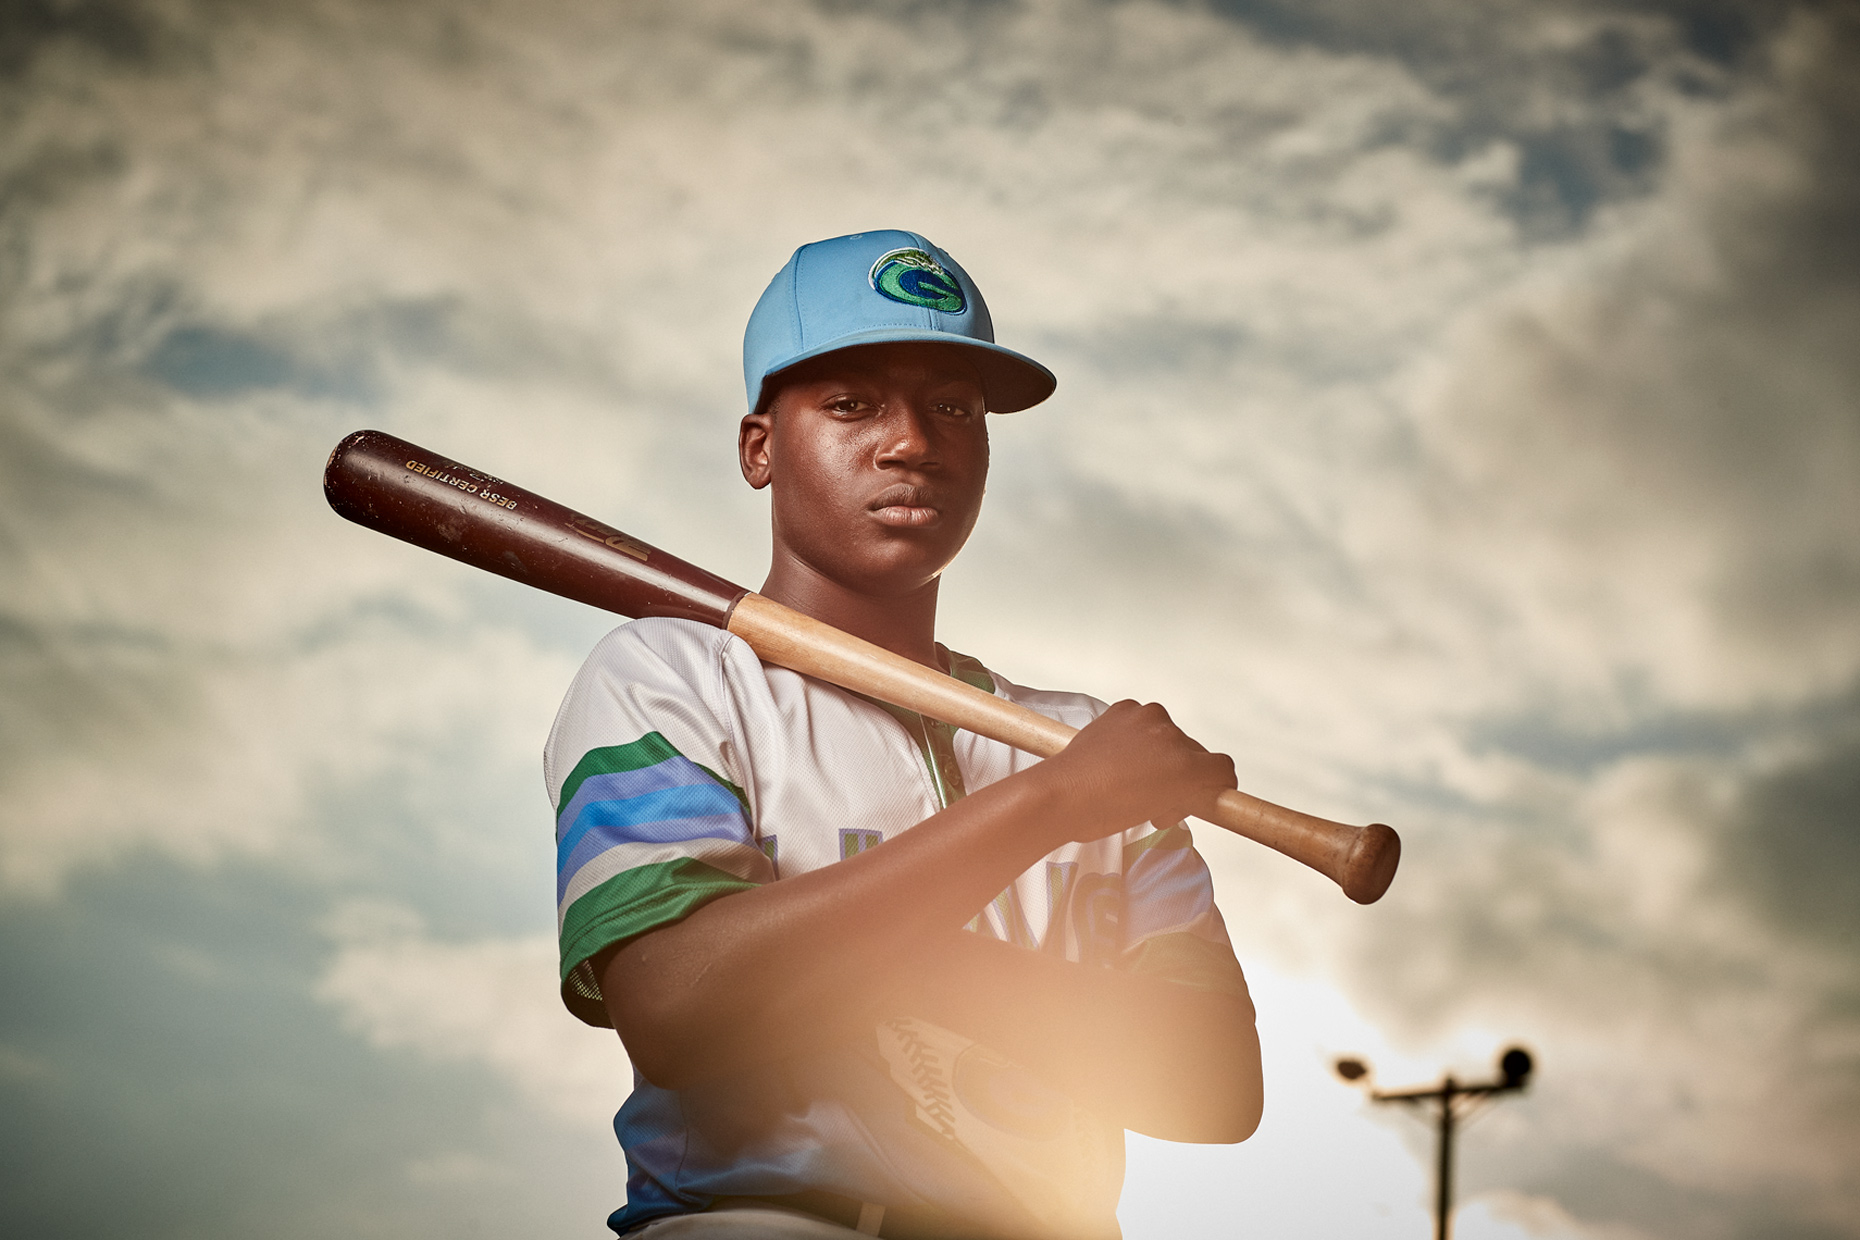 Elija Barnes | Teenage baseball star